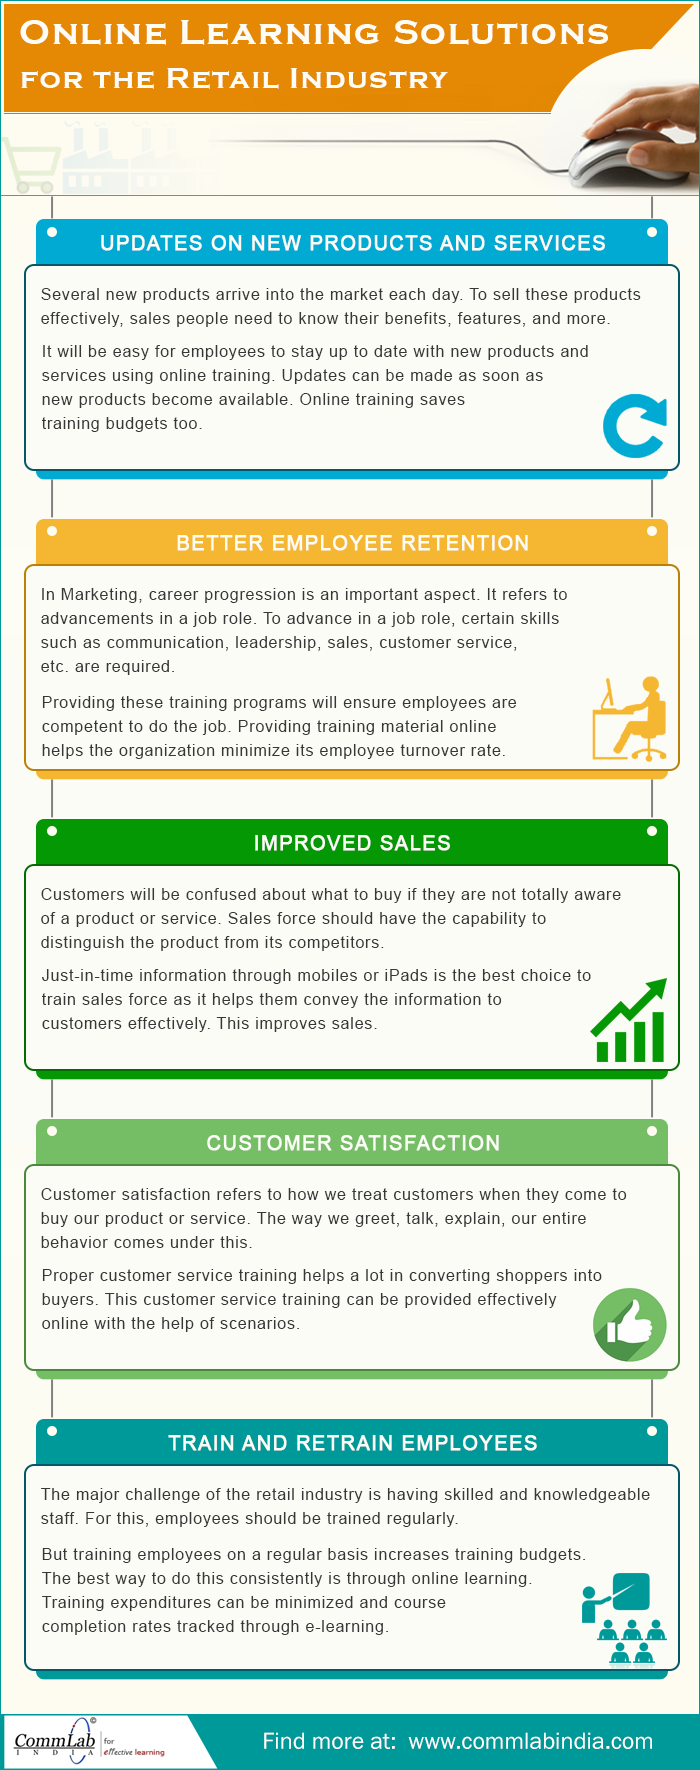 Online Learning Solutions for The Retail Industry [Infographic]